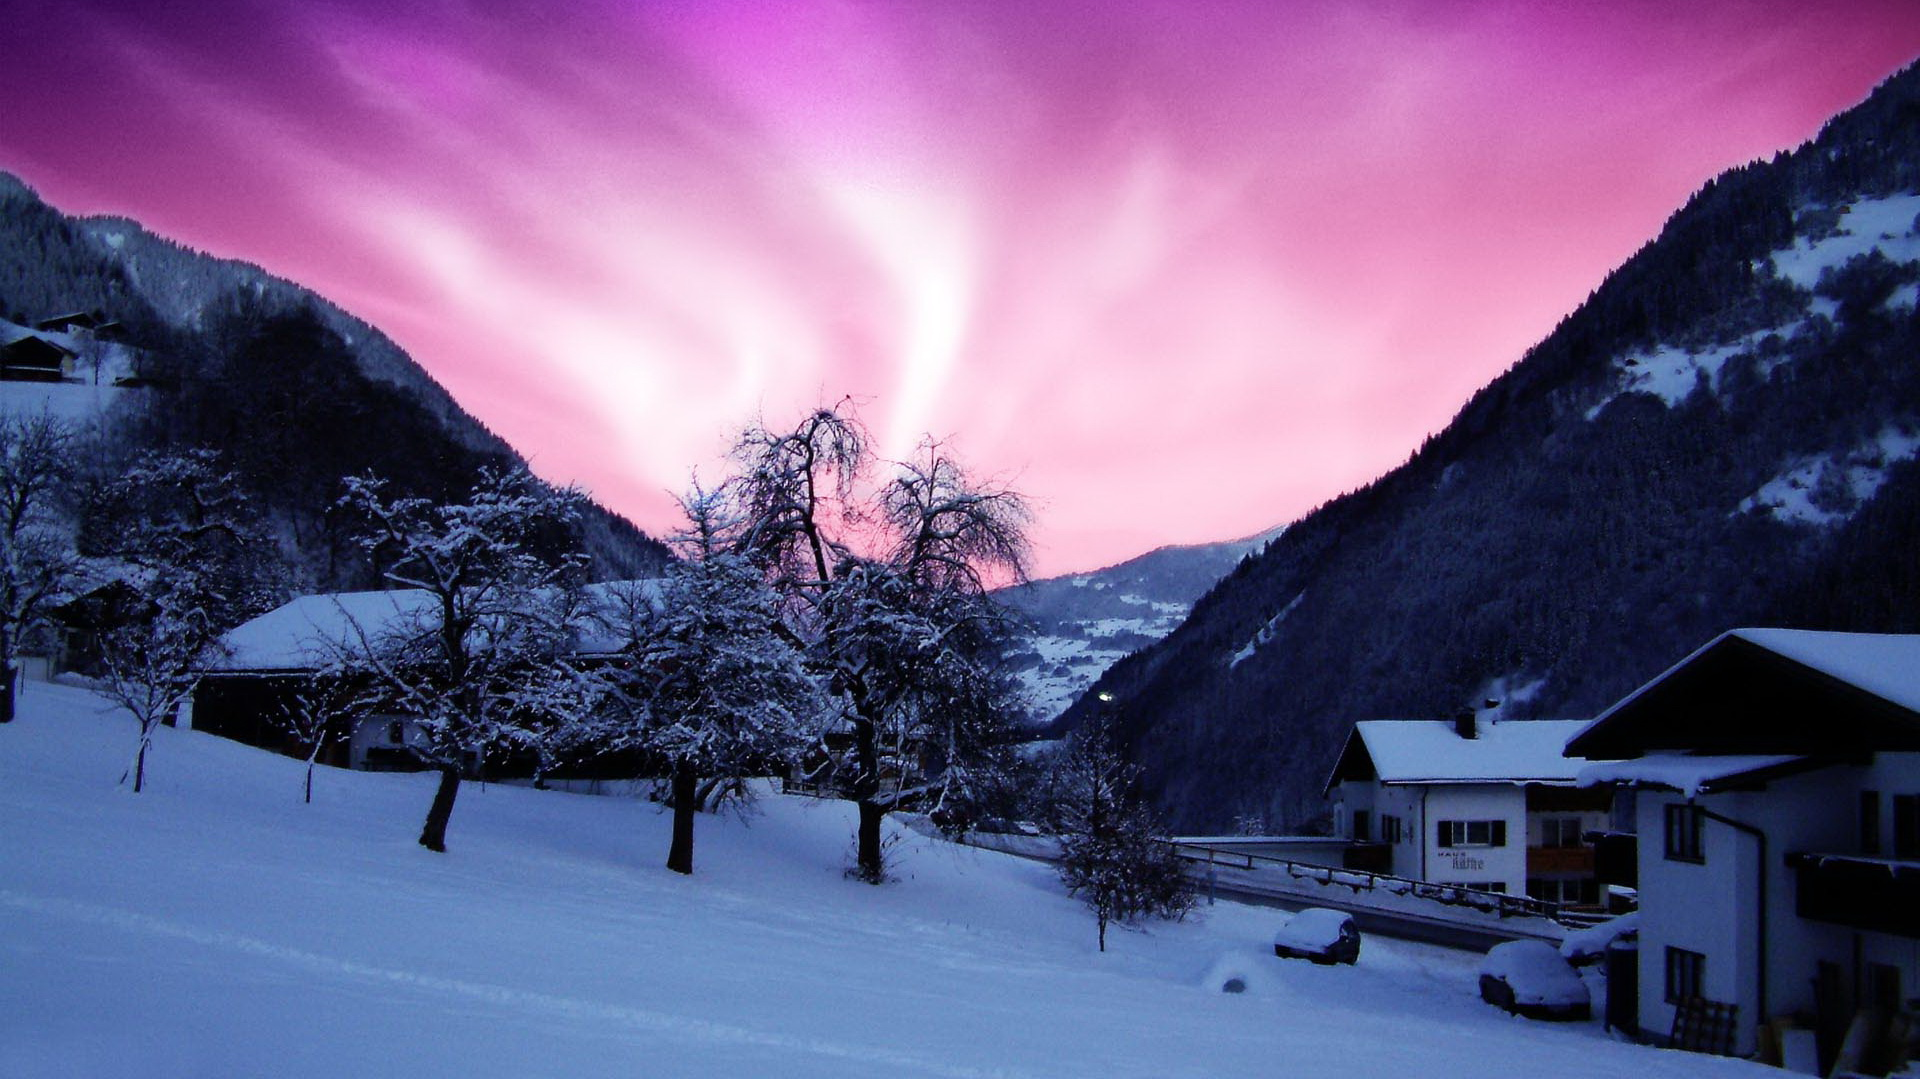 click to free download the wallpaper--natural scenery photos - A Heavy Snow is Over, the Pink Sky, Strikes As a Romantic Scene 1920X1080 free wallpaper download